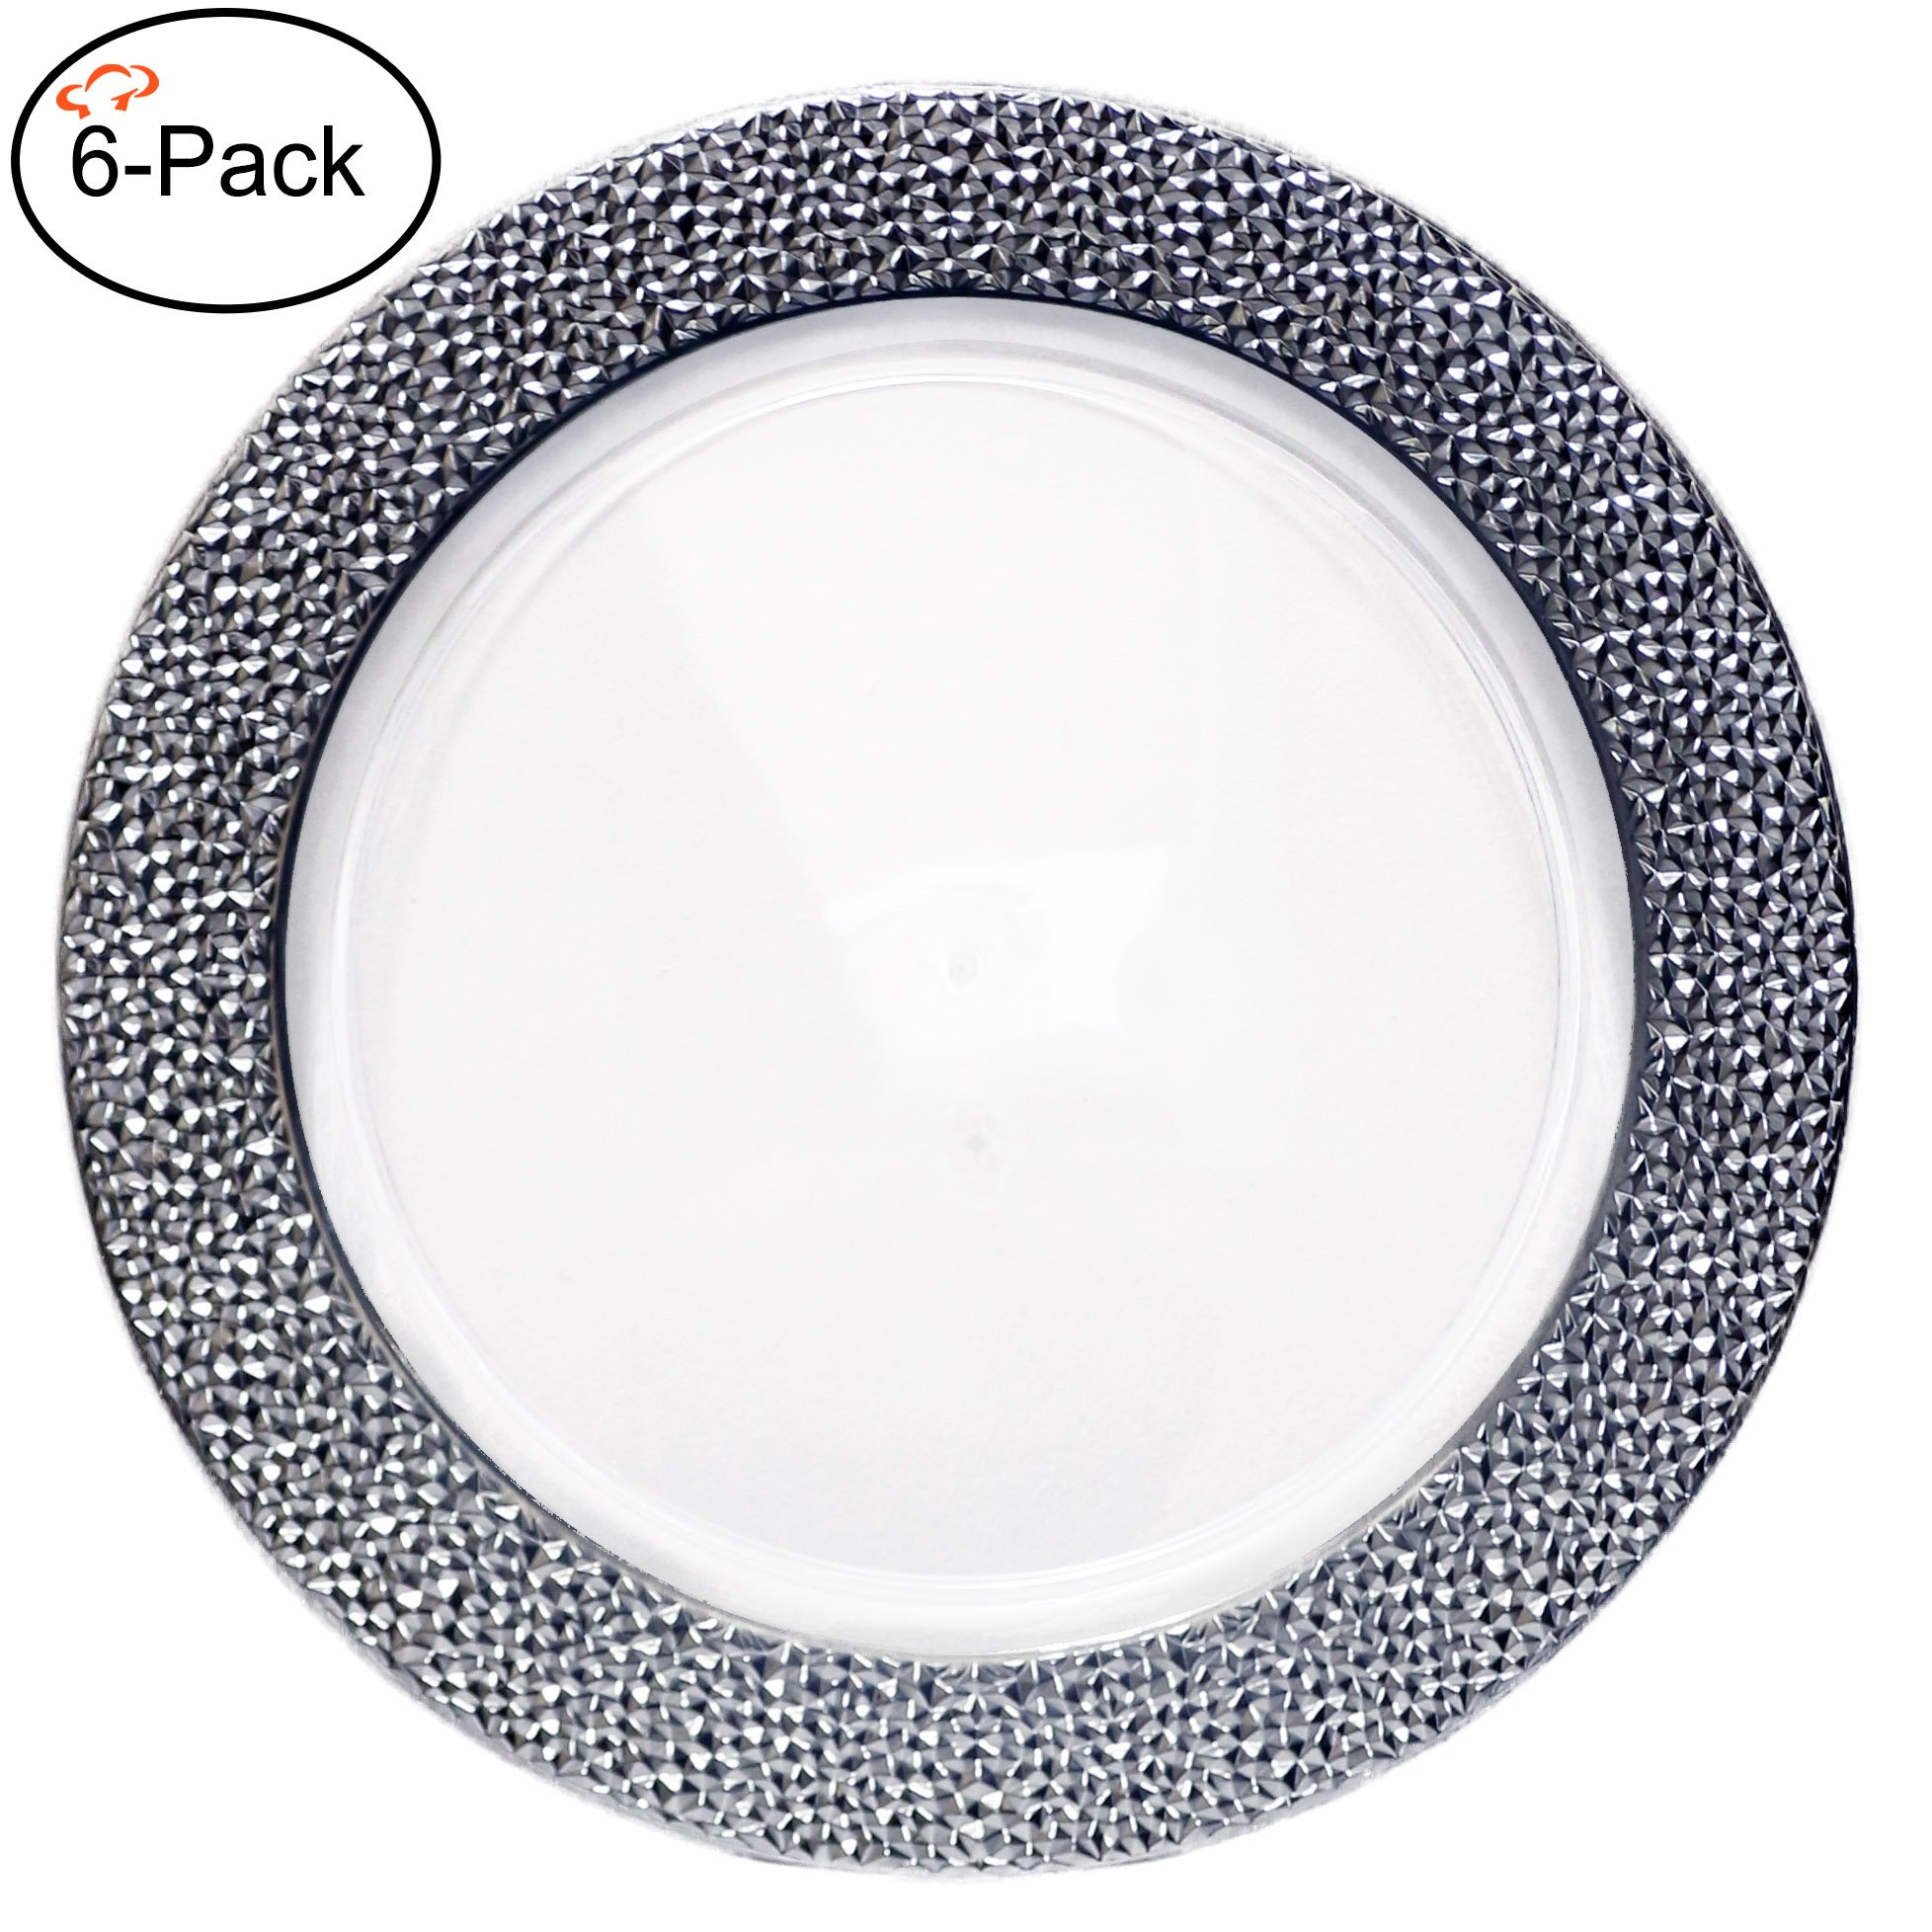 Tiger Chef 6-Pack 13 inch Round Clear with Silver Rim Hammered Plastic Charger Plates Disposable Set Silver Chargers Plates for Parties, Wedding, and Special Events (6, Clear with Silver Hammered Rim)